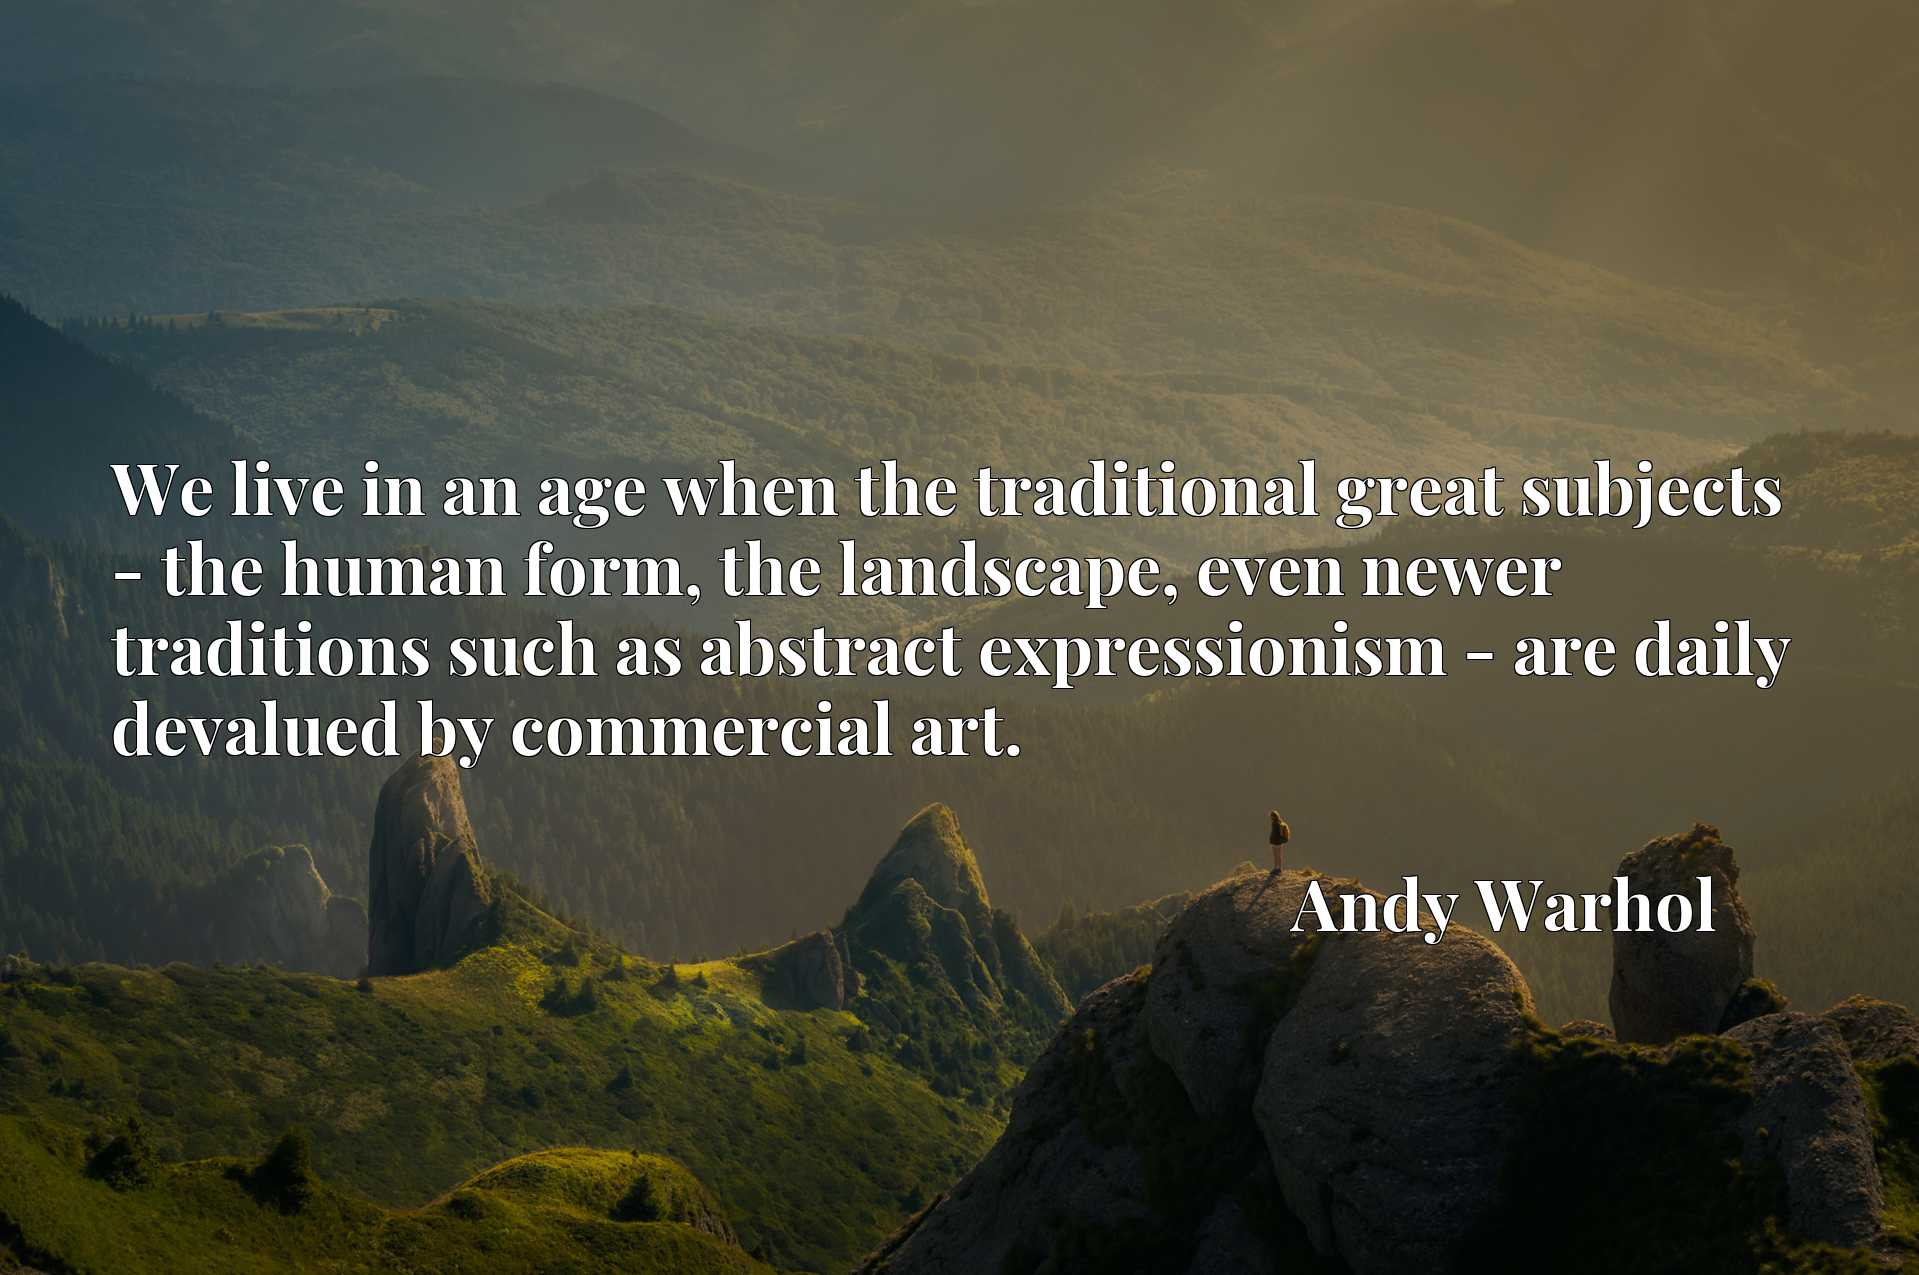 We live in an age when the traditional great subjects - the human form, the landscape, even newer traditions such as abstract expressionism - are daily devalued by commercial art.